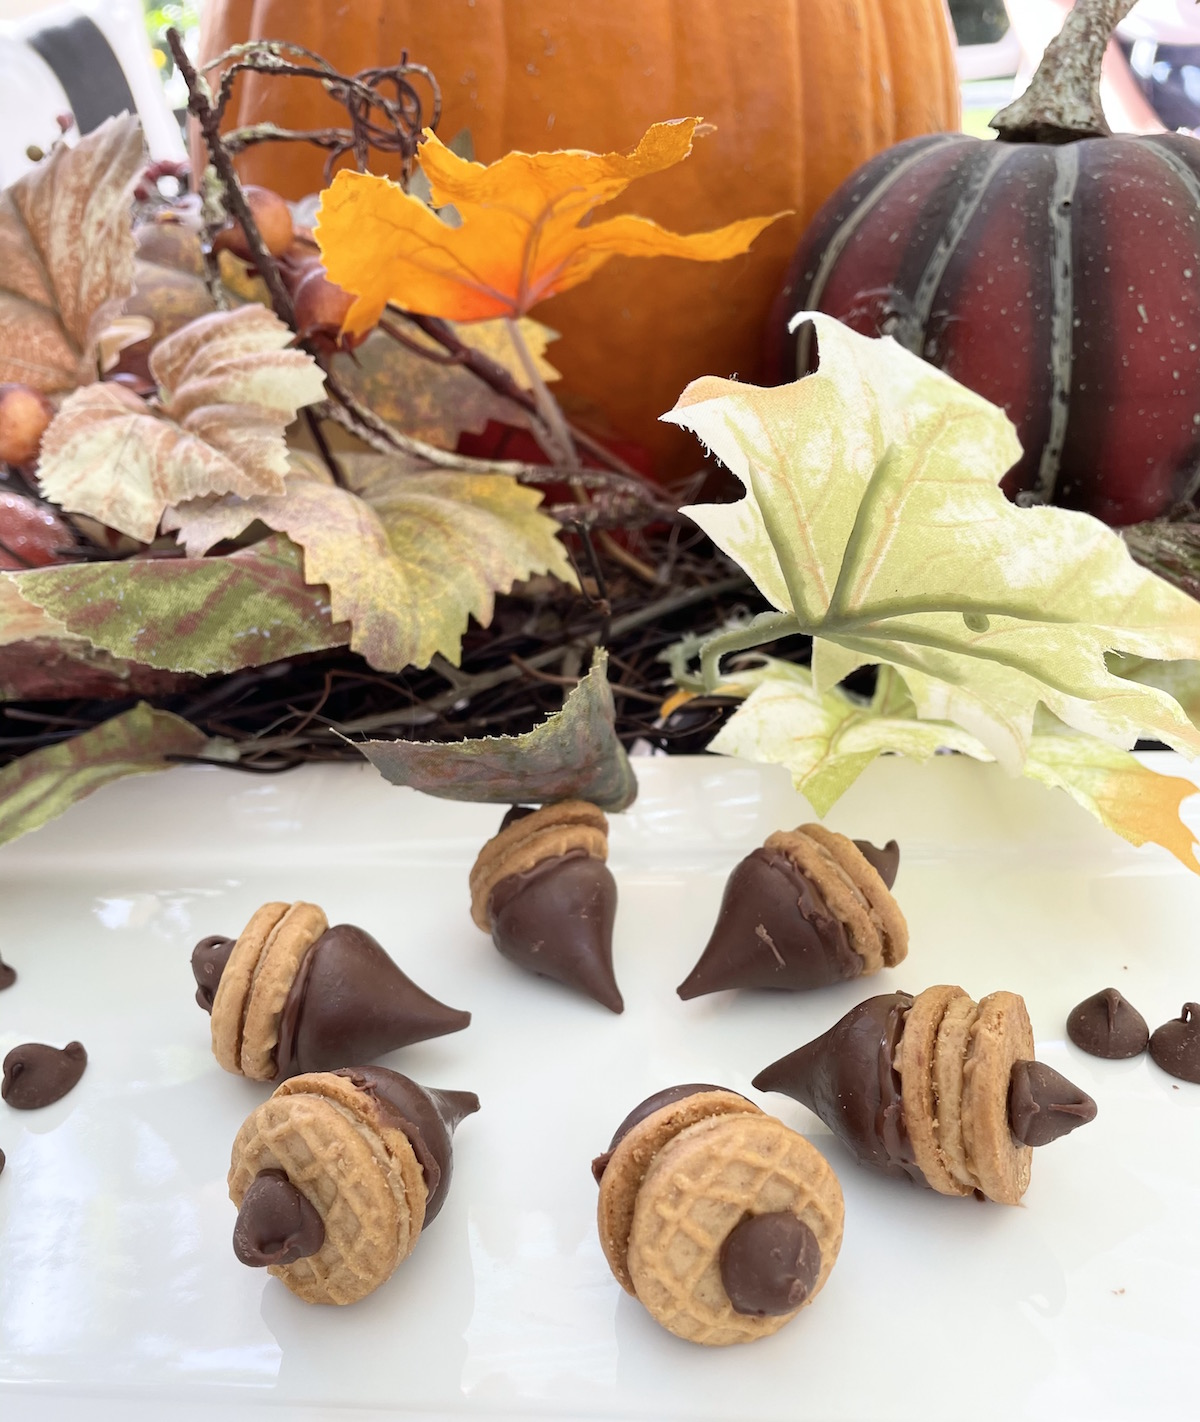 Adorable Acorn Cookie Recipe That Your Friends & Family Will Love